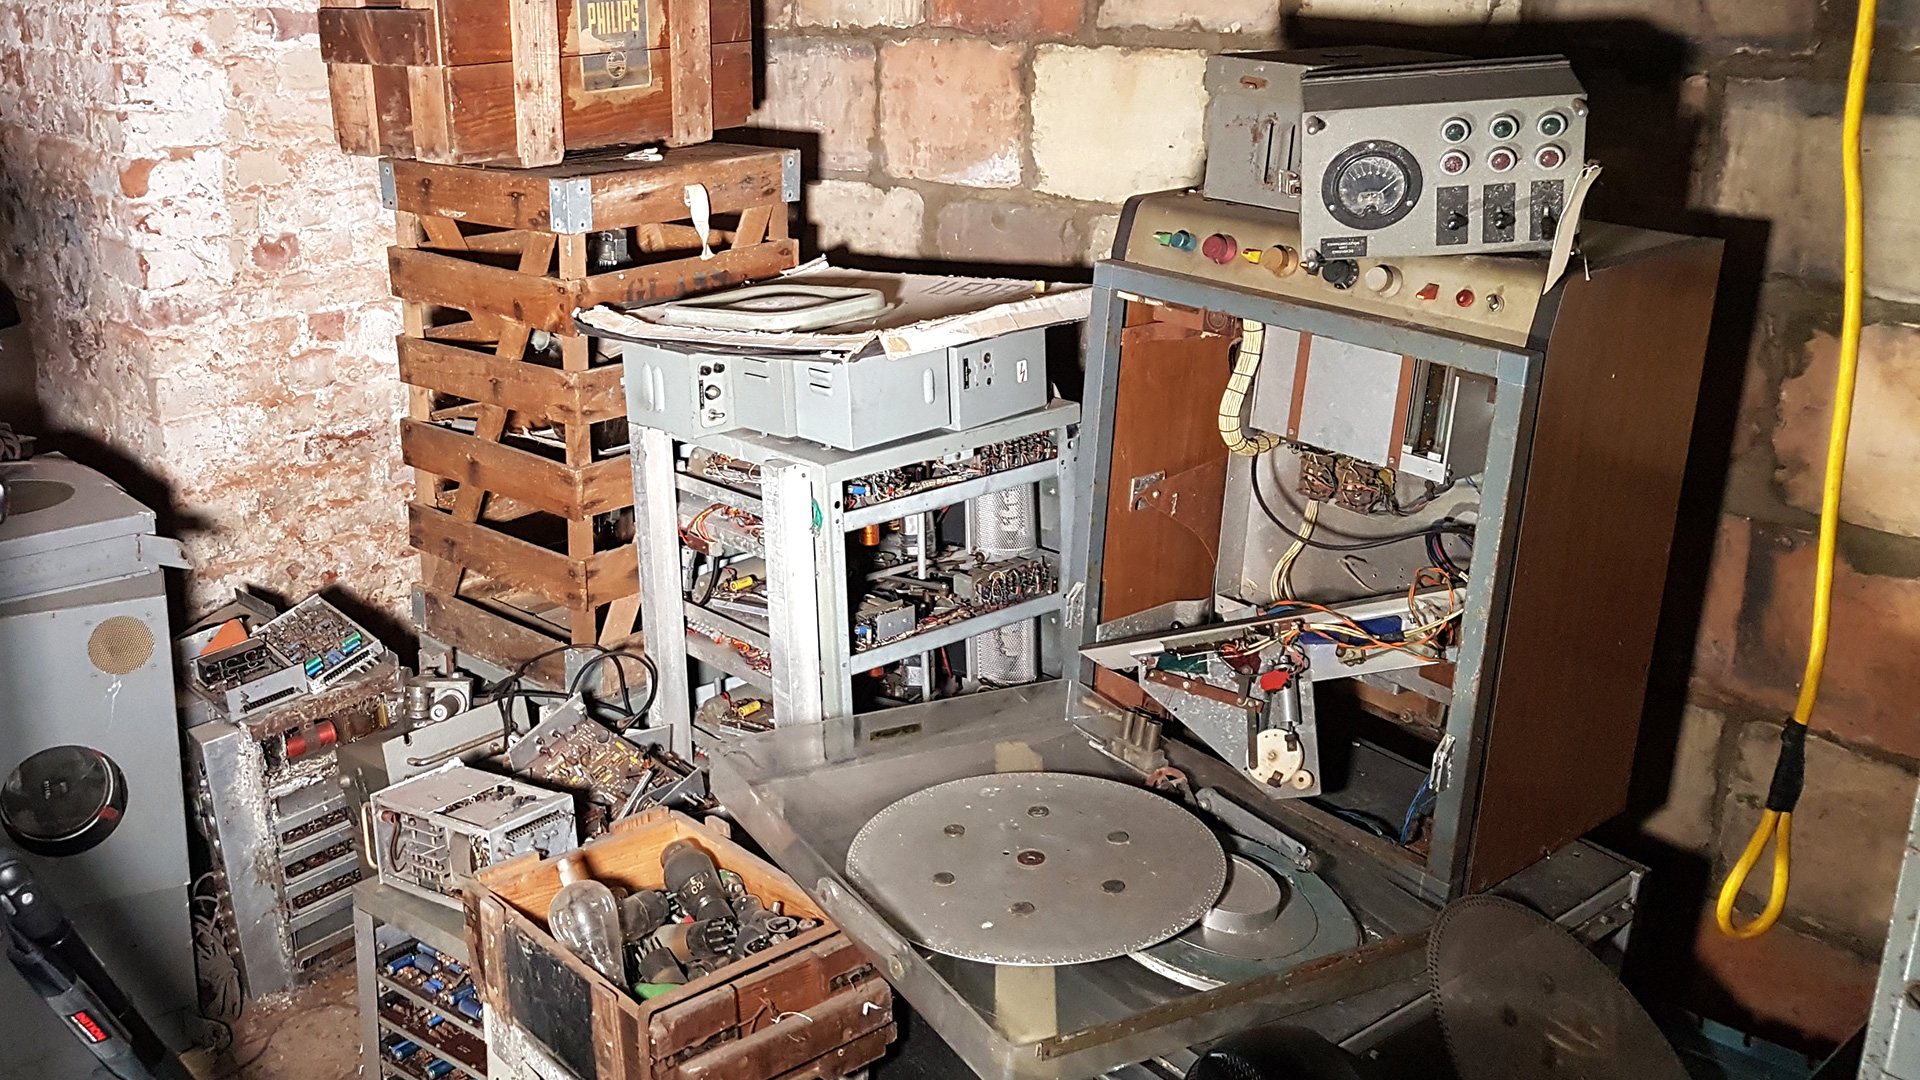 Old and abandoned broadcasting equipment in a disused area at Alexandra Palace.